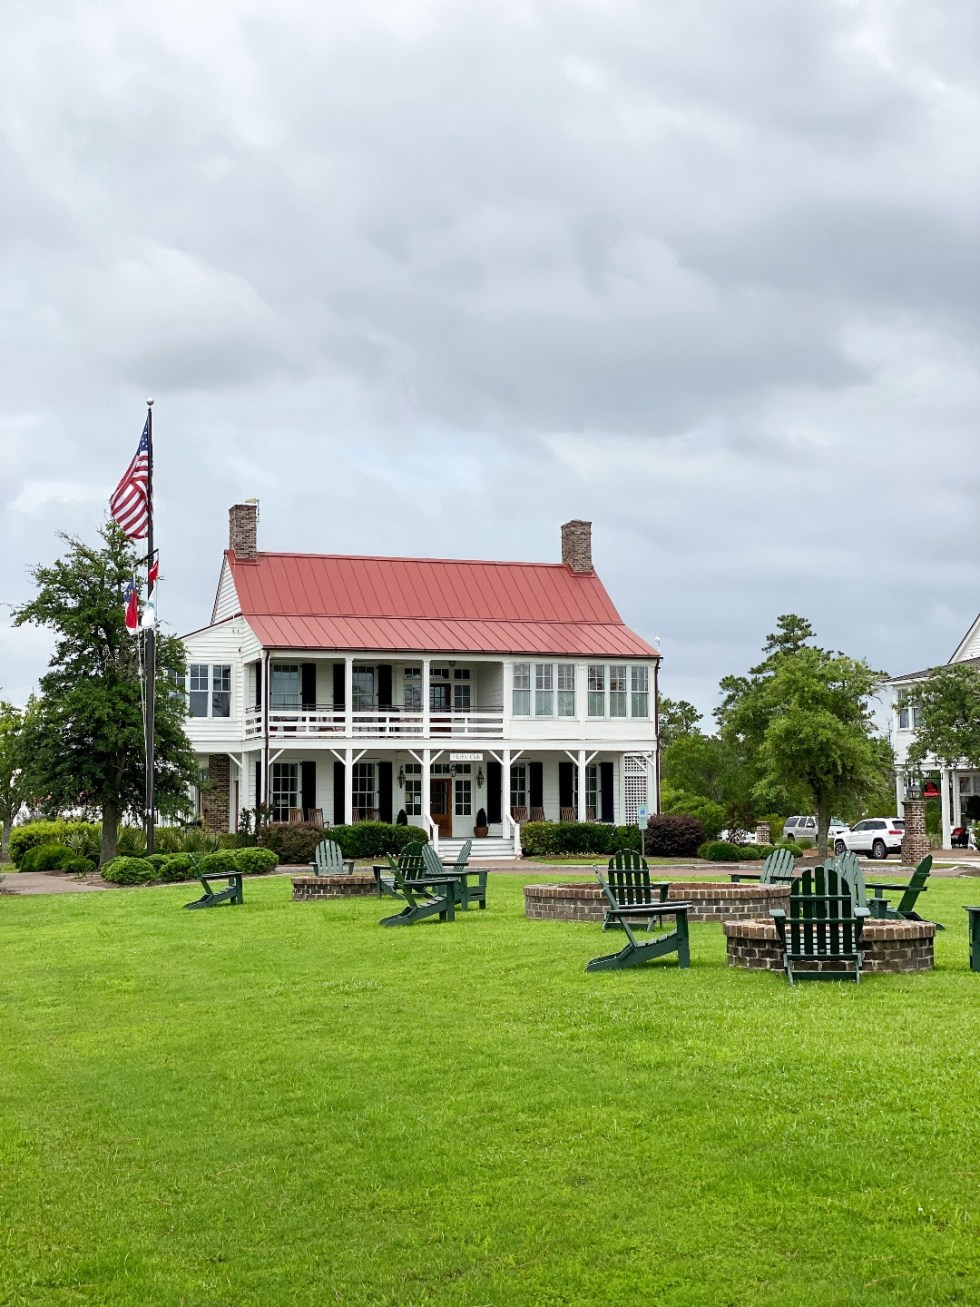 What to Do in Oriental, NC - I'm Fixin' To - @imfixintoblog | Things to do in Oriental NC by popular NC travel blog, I'm Fixin' To: image of a white building with a tall flag pole and wooden chairs and brick fire pits on the front lawn.